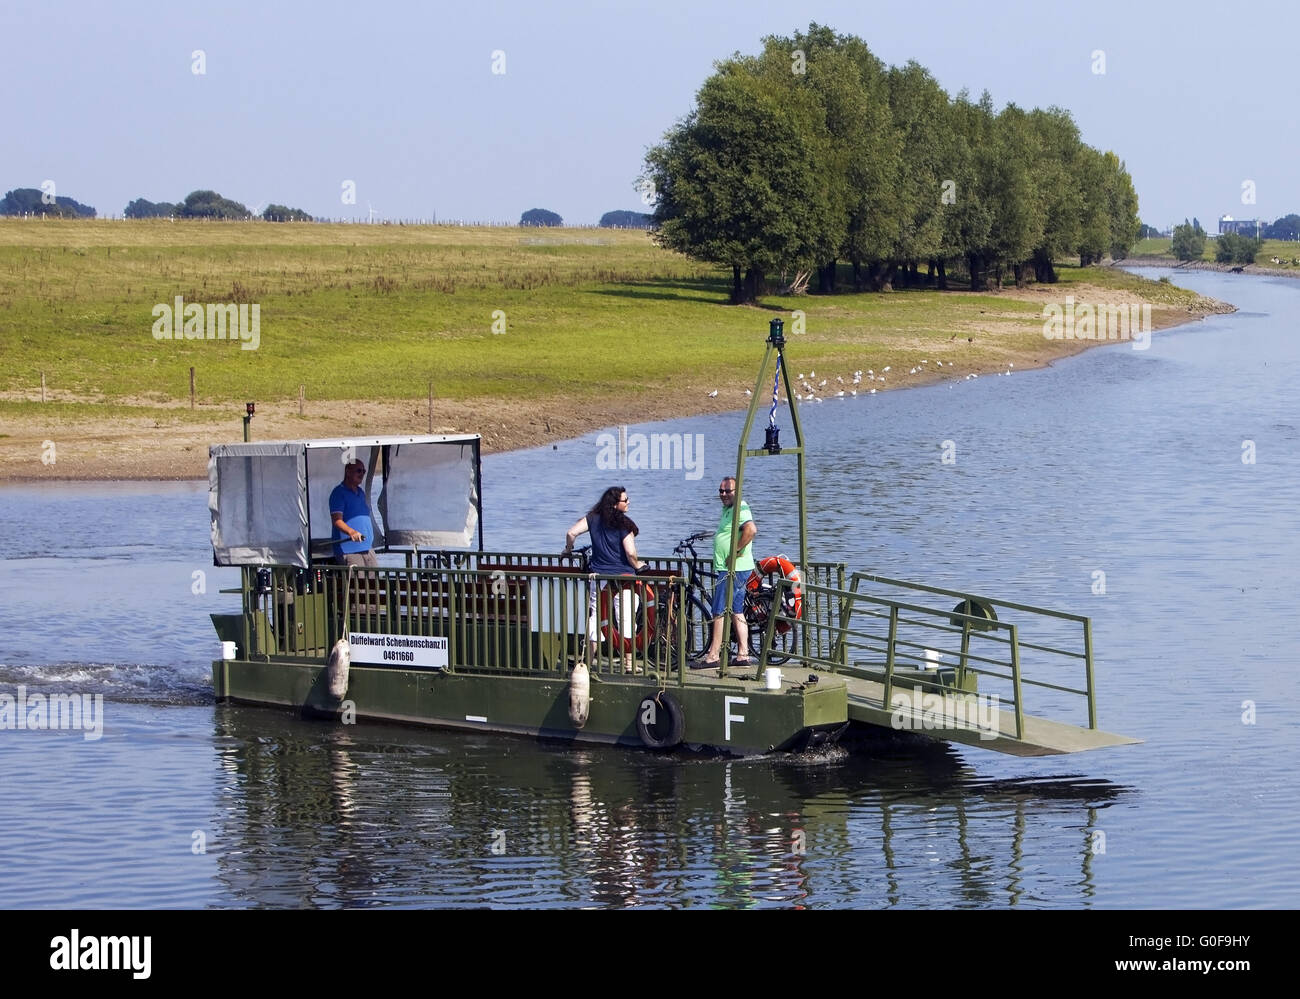 Bicycle ferry on the Old Rhine, Dueffelward, Kleve - Stock Image